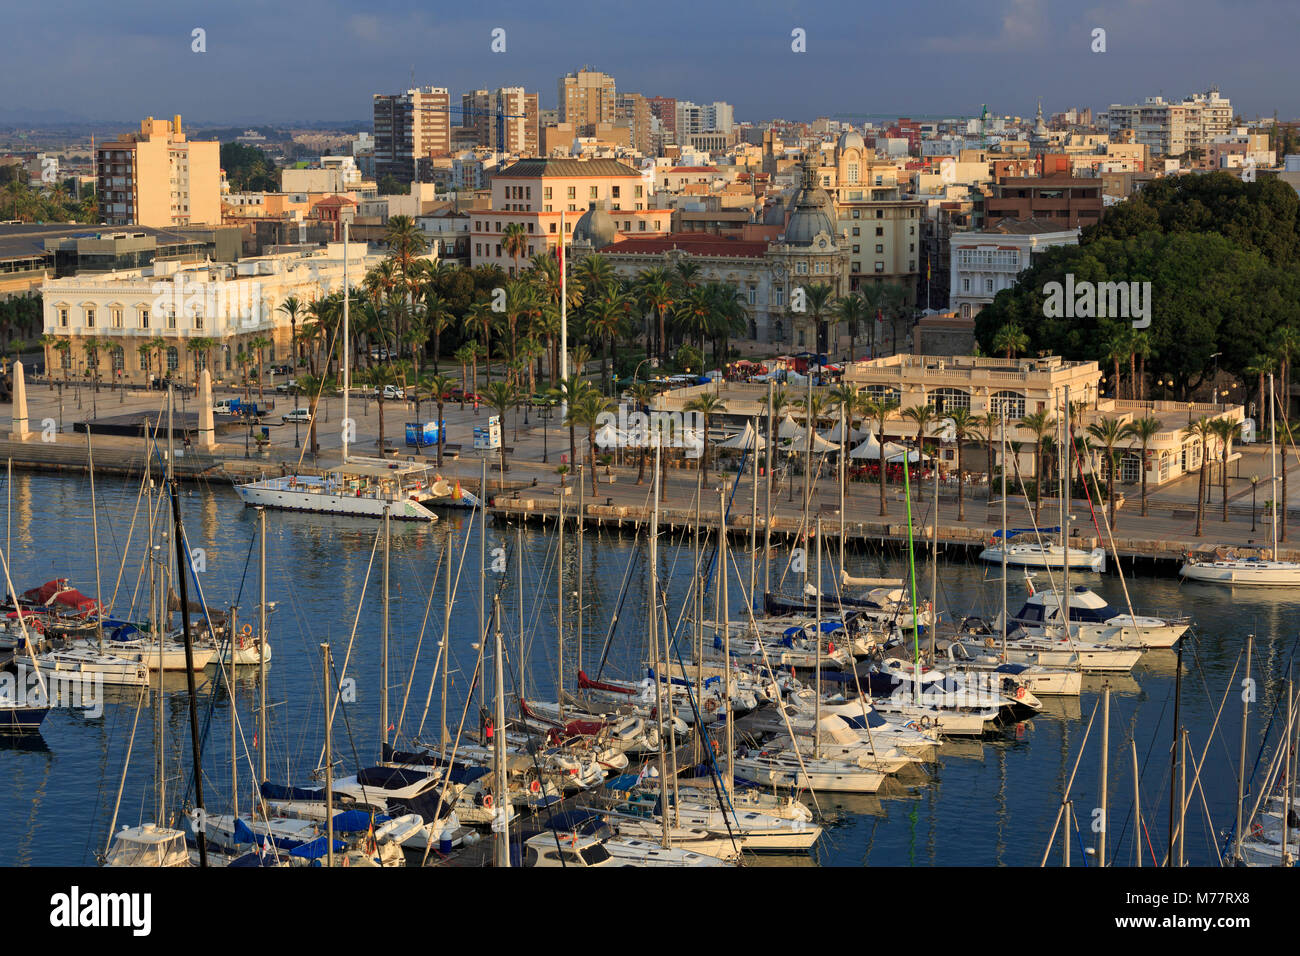 Marina, Cartagena Port, Murcia, Spain, Europe - Stock Image